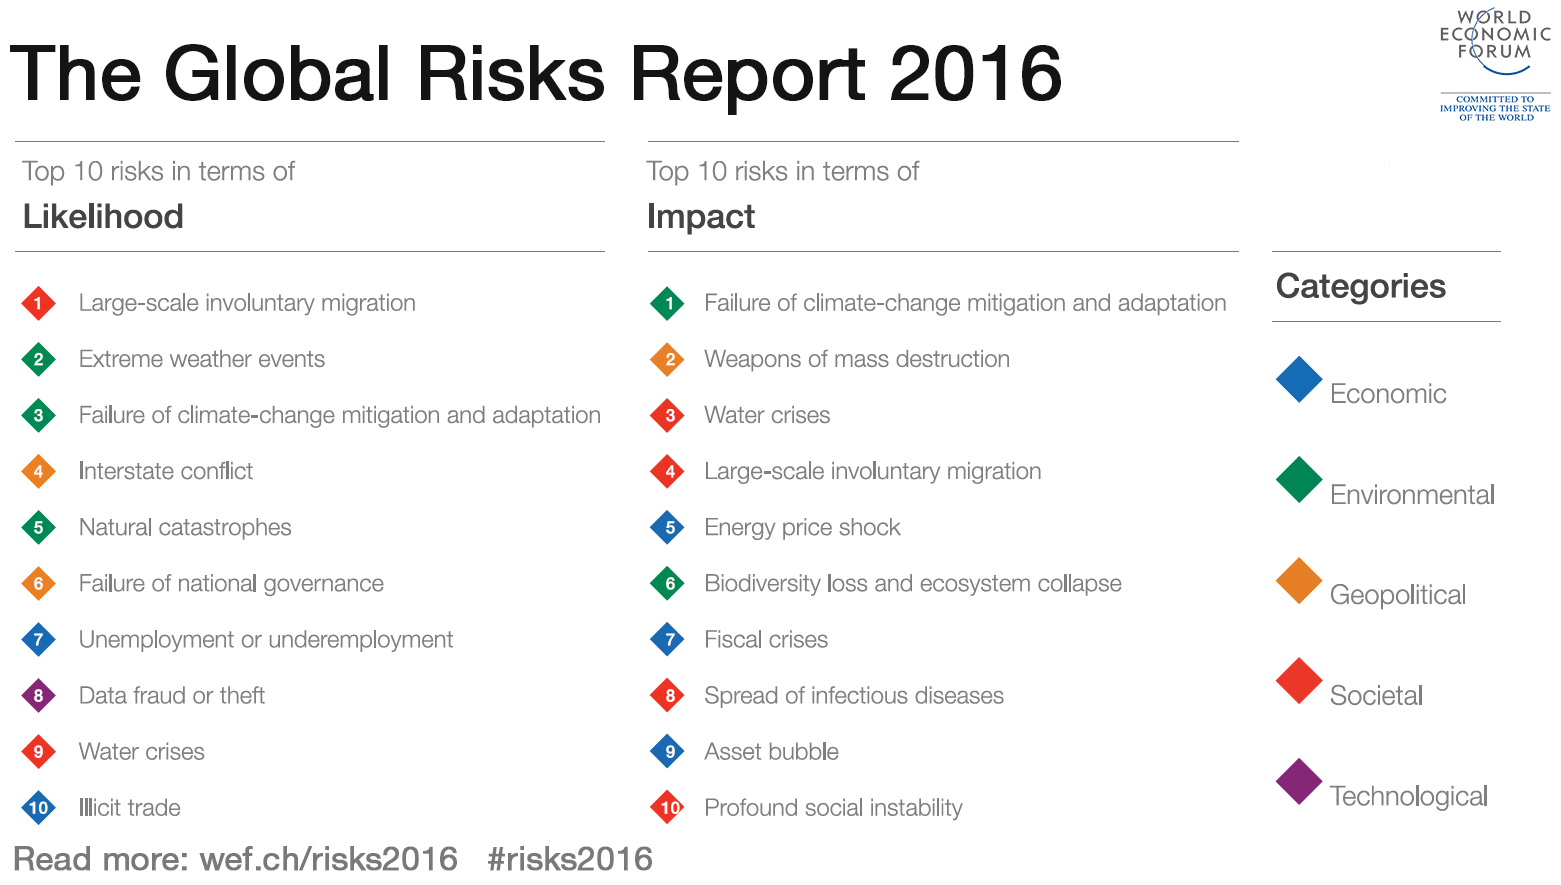 What Are The Top Global Risks For